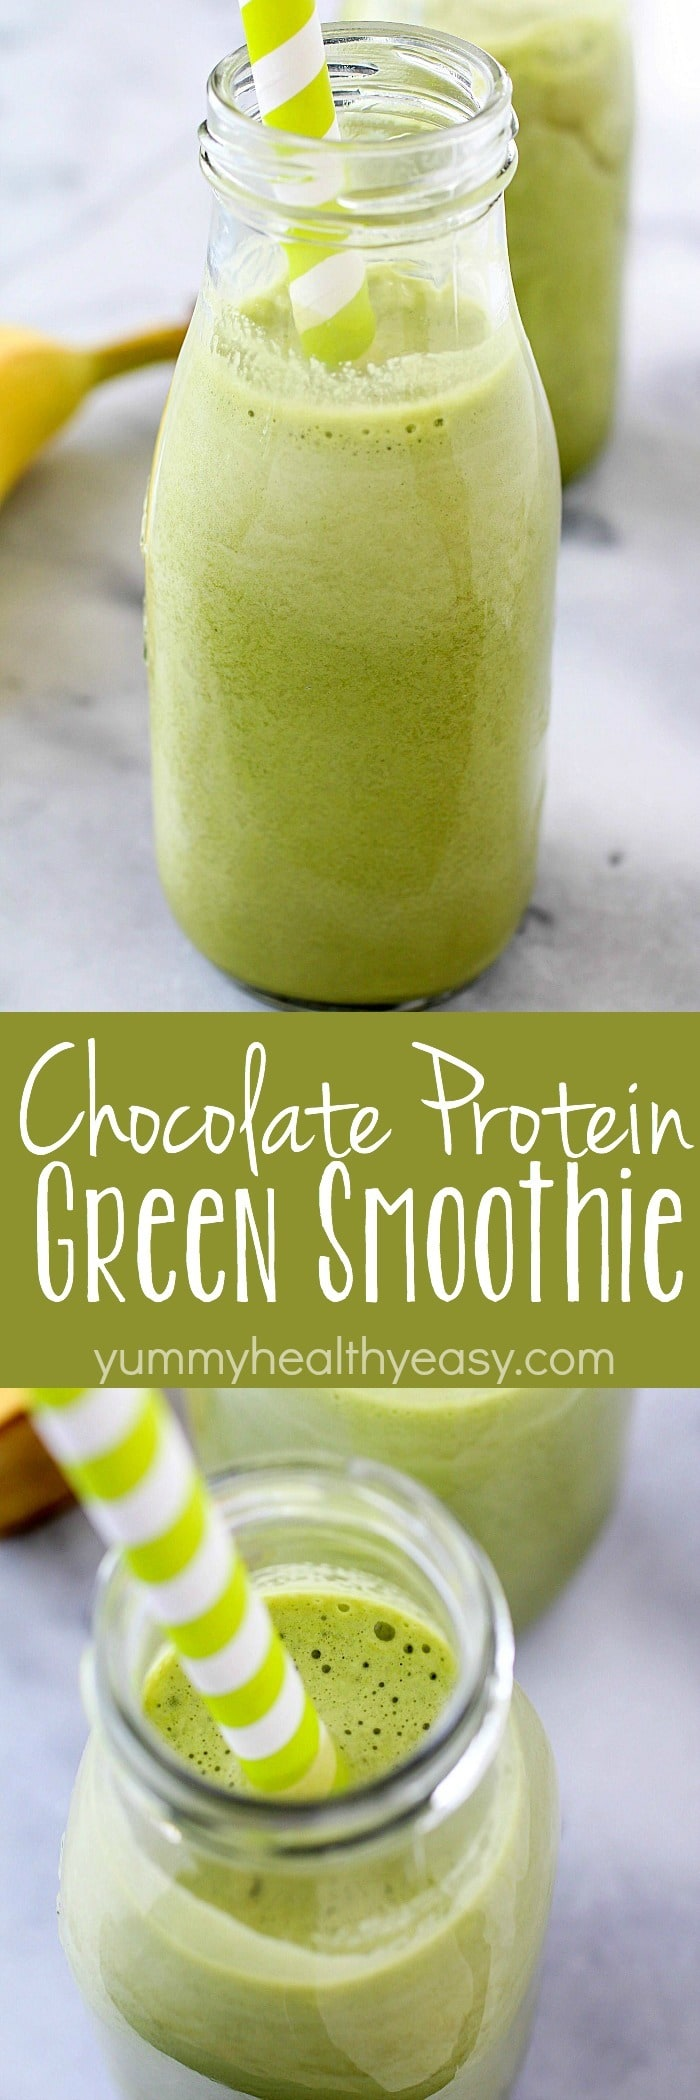 This Chocolate Protein Green Smoothie combines the filling power of protein powder and almonds + the health benefits from the green smoothie! This smoothie makes a great breakfast, snack or post-workout drink and tastes delicious!